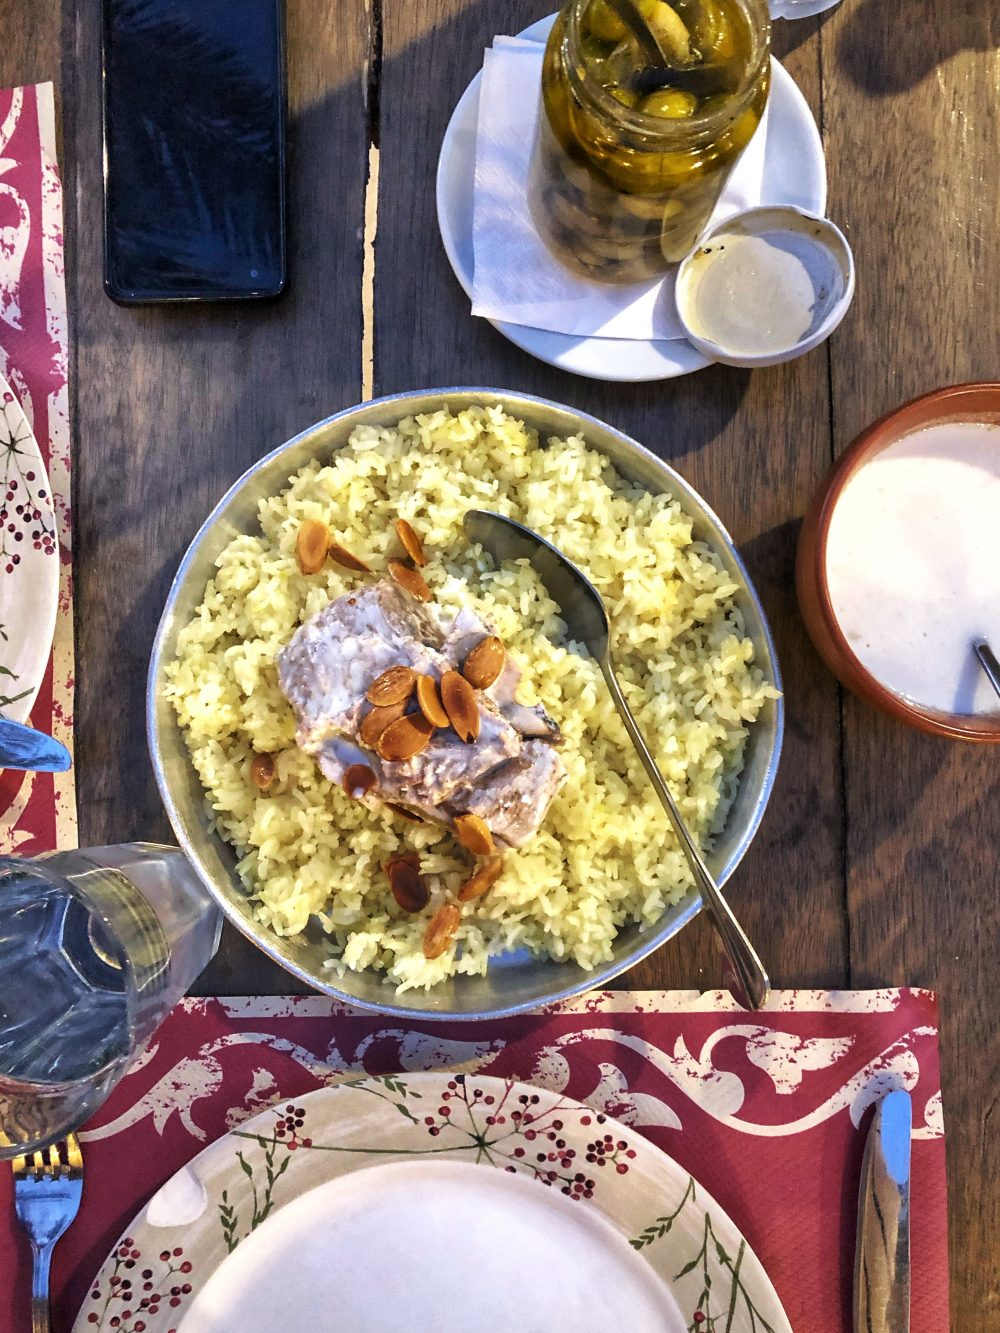 6 Cities That You Must Travel To Just For The Food: Amman